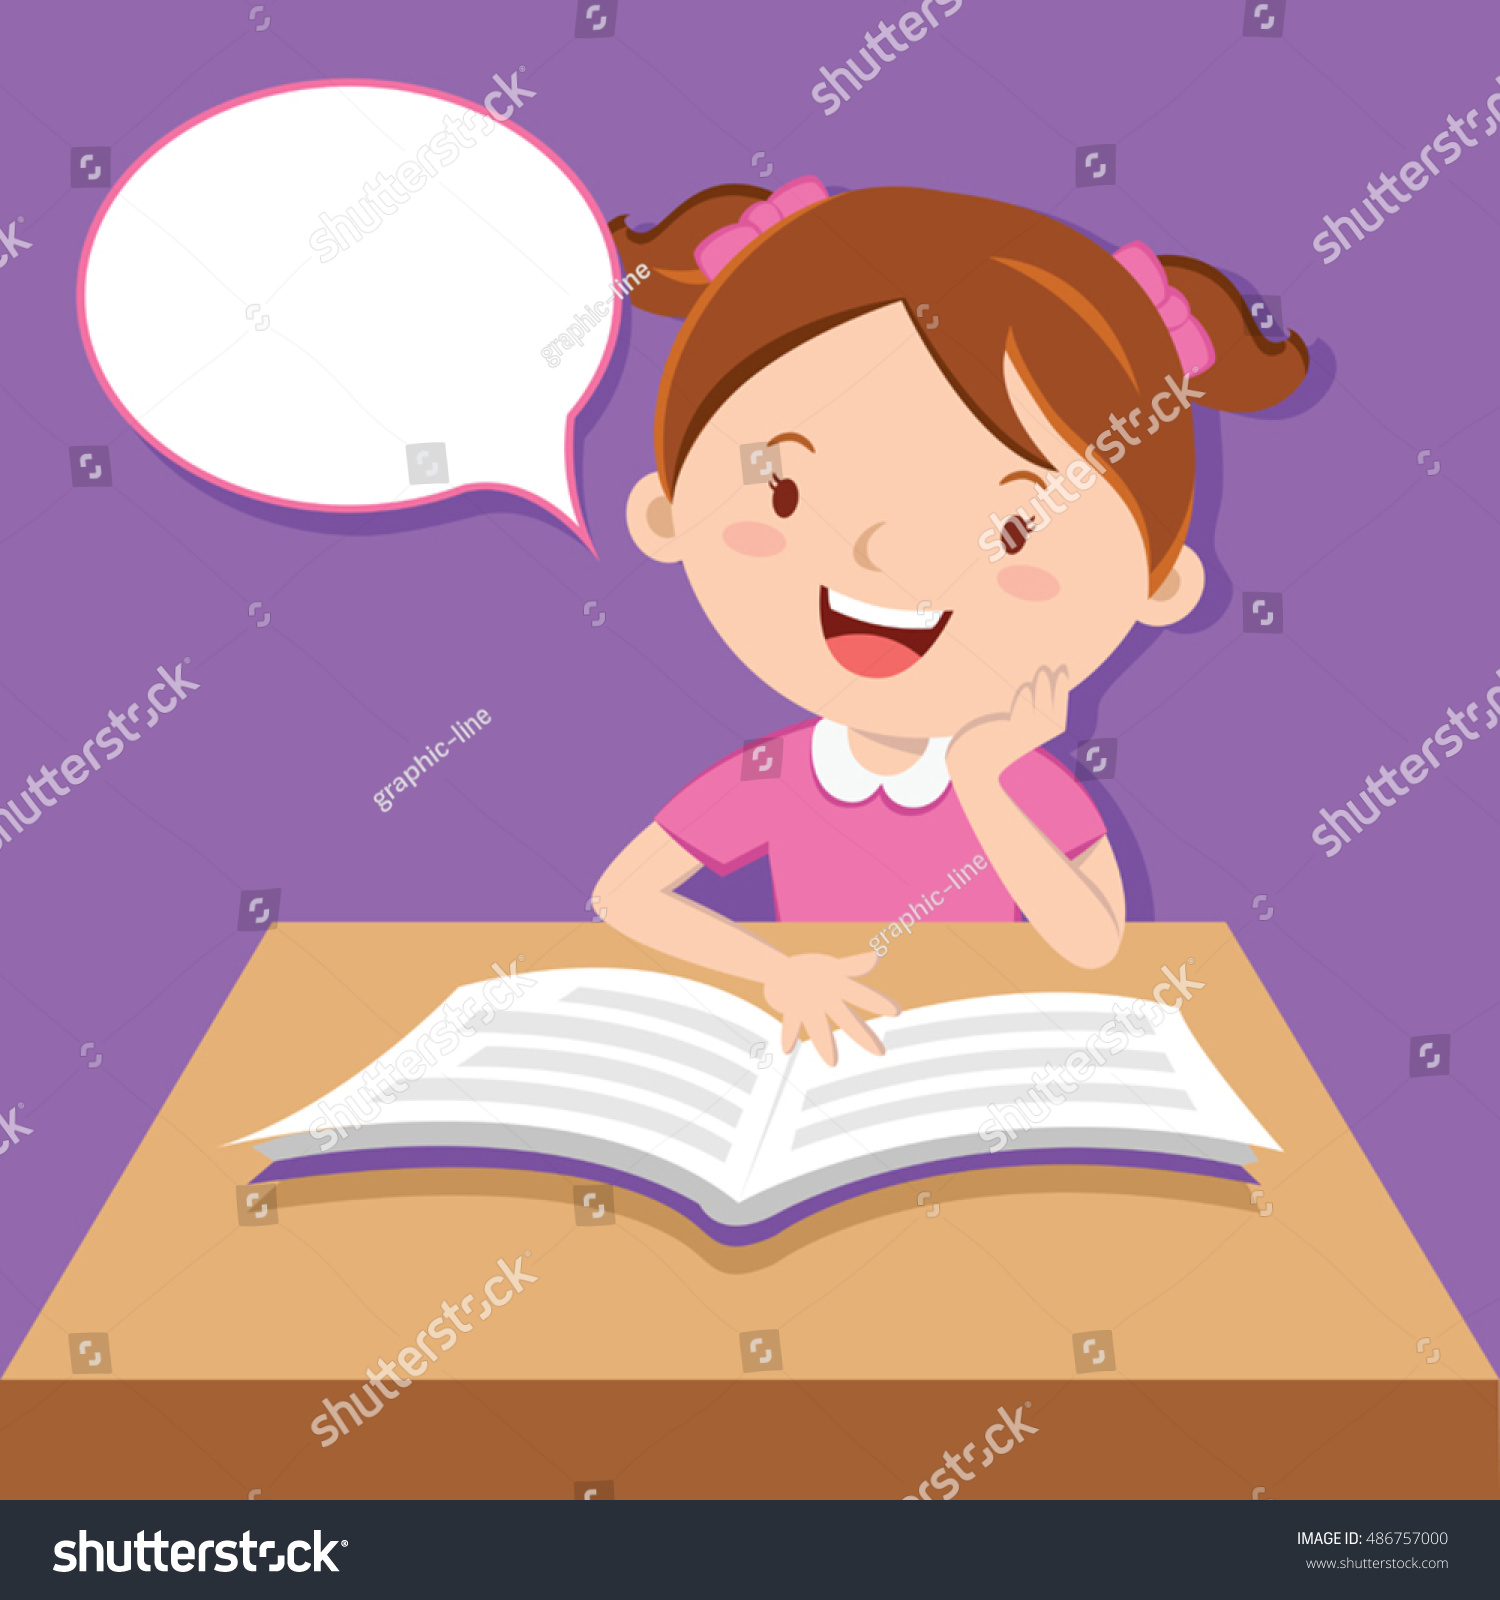 Cute Girl Reading Book Stock Vector 486757000 - Shutterstock